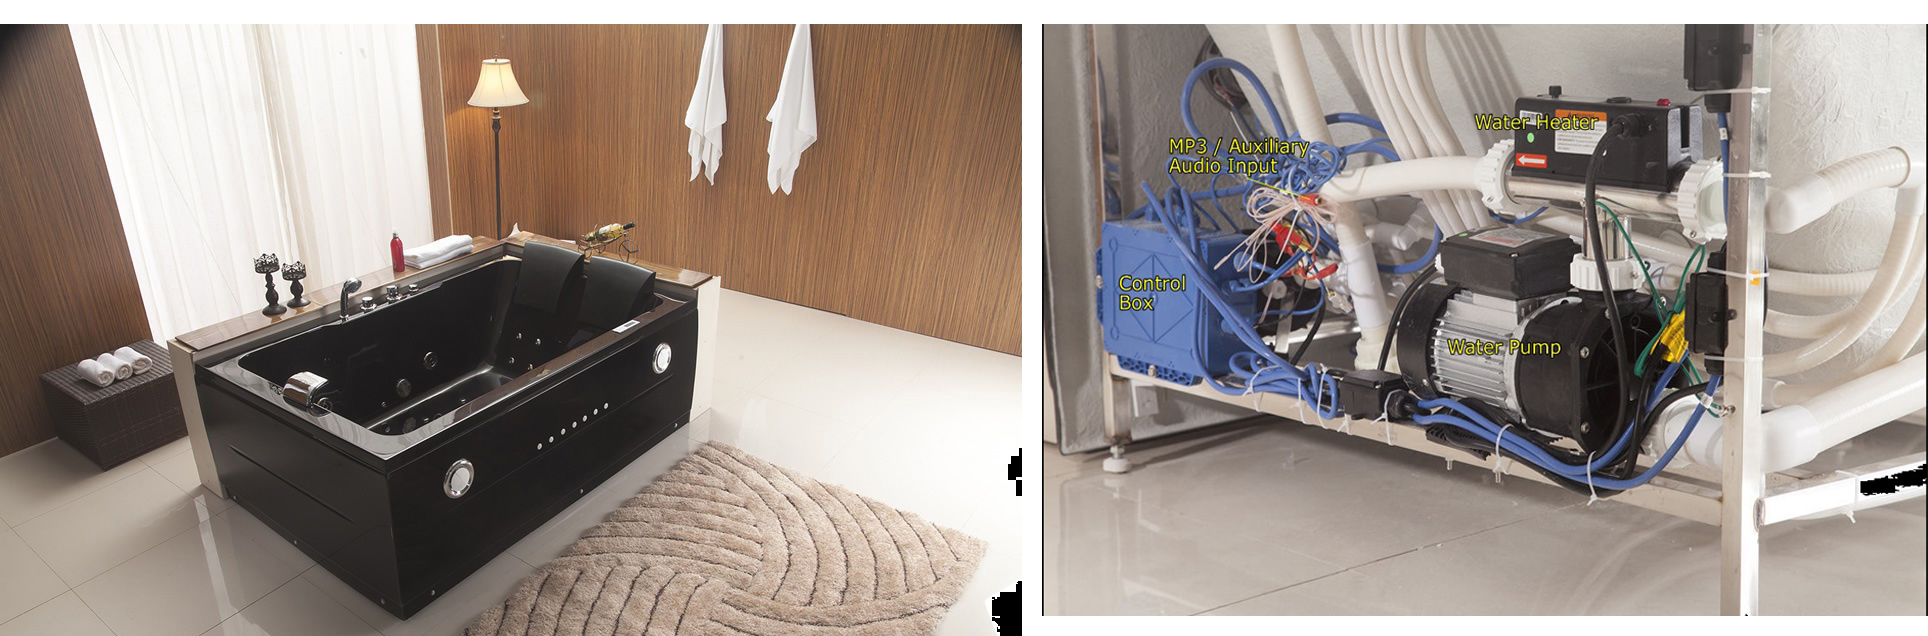 Details Of Juno Jetted Hydrotherapy Massage Whirlpool Bathtub